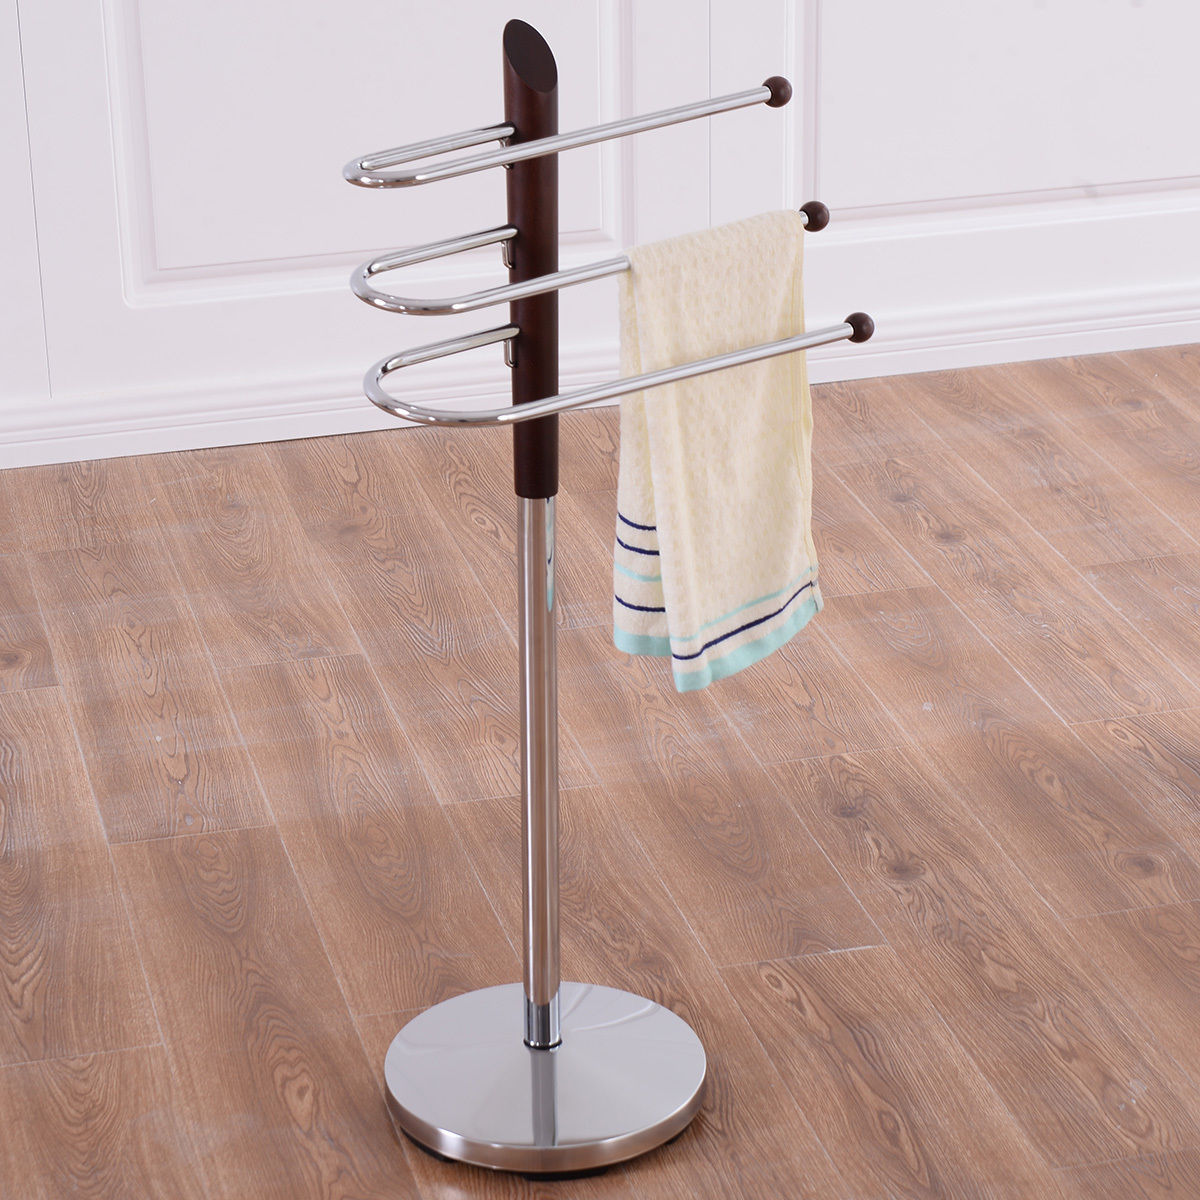 Goplus 3 Tier Free Standing Floor Towel Holder Bathroom Steel Towel